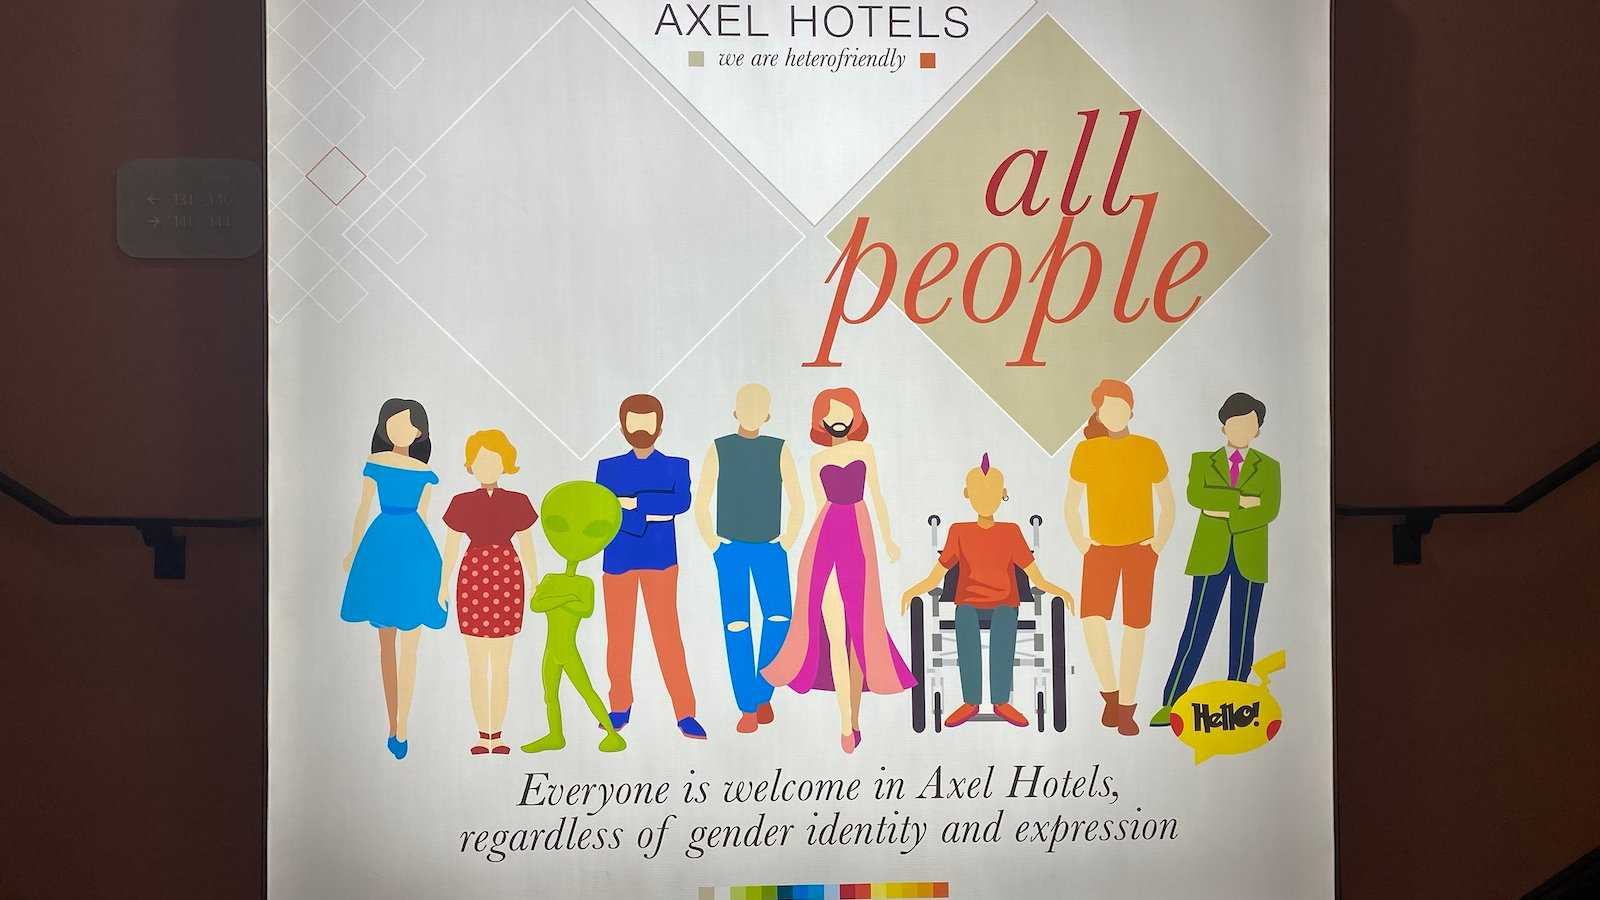 Axel Hotels define themselves as 'hetero-friendly' which means they're the most gay friendly places to stay all over the world